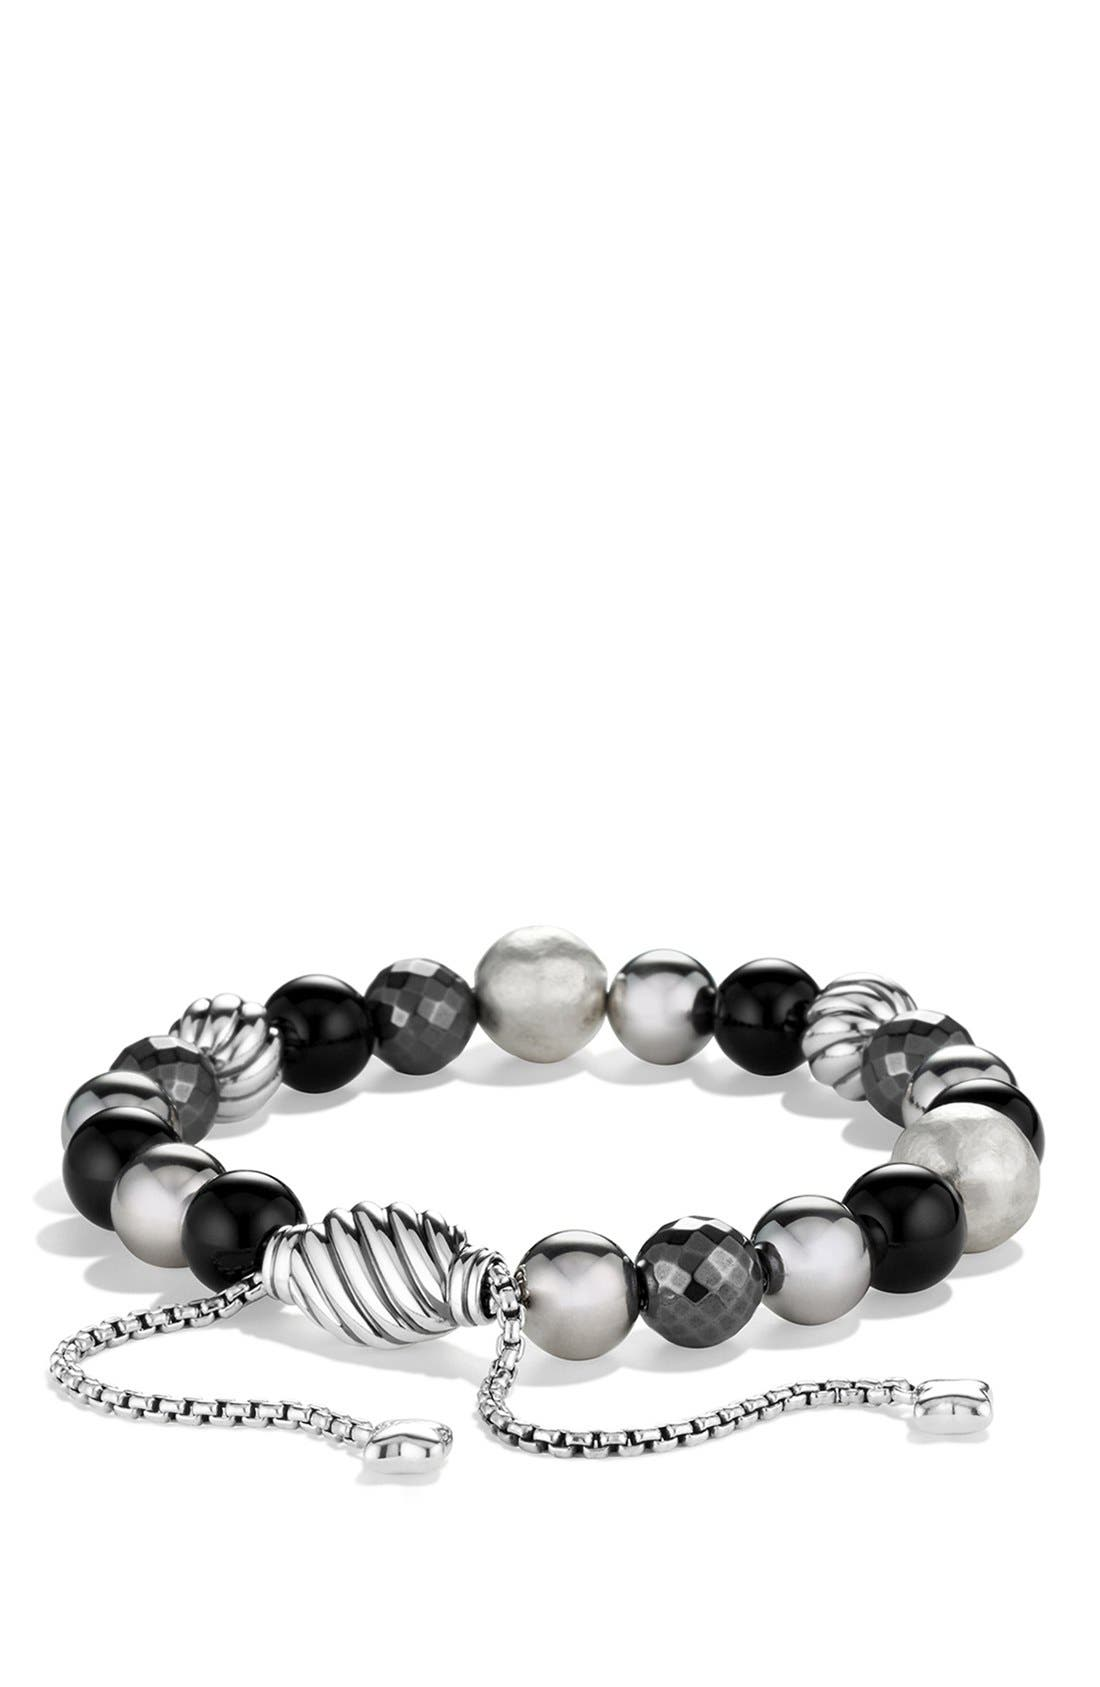 DAVID YURMAN DY Elements Bead Bracelet